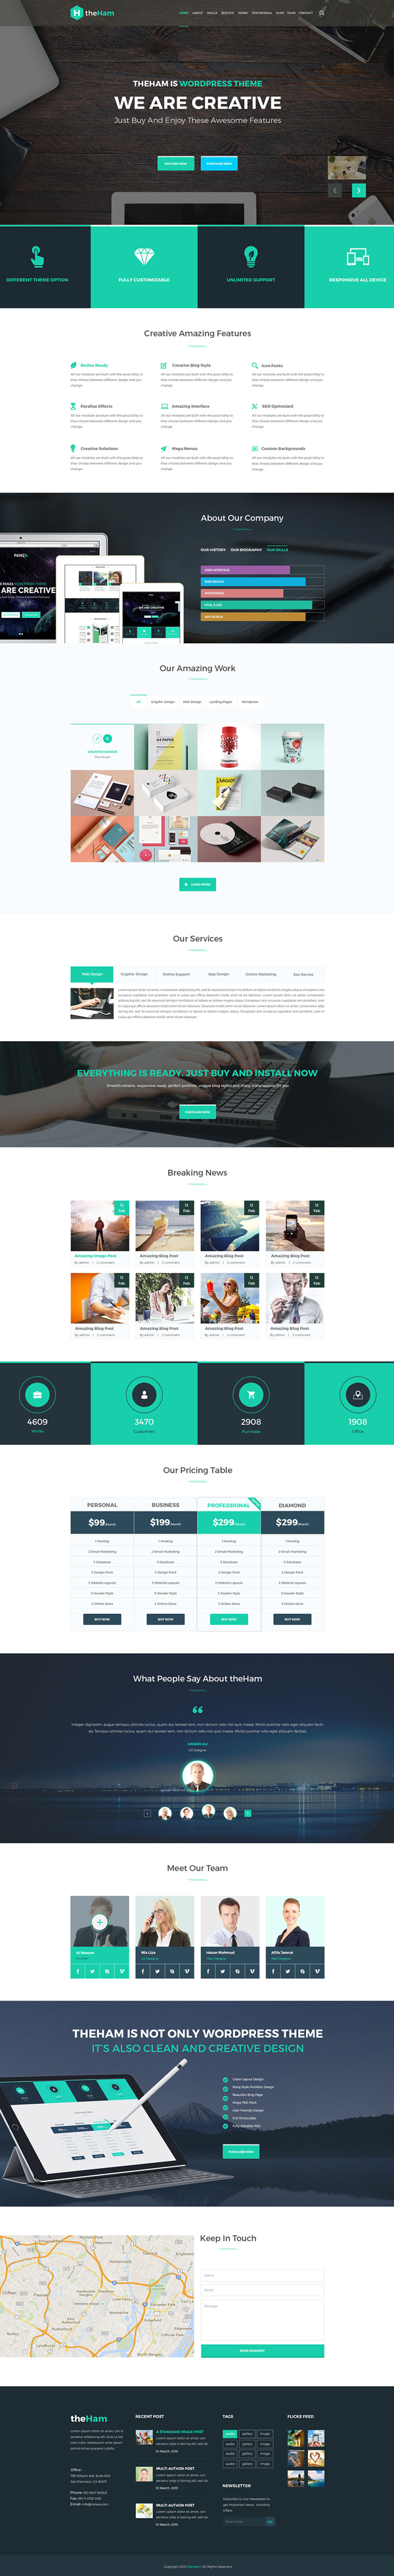 15 Free Responsive Psd Website Templates Psd Templates Website Template Web Design Agency